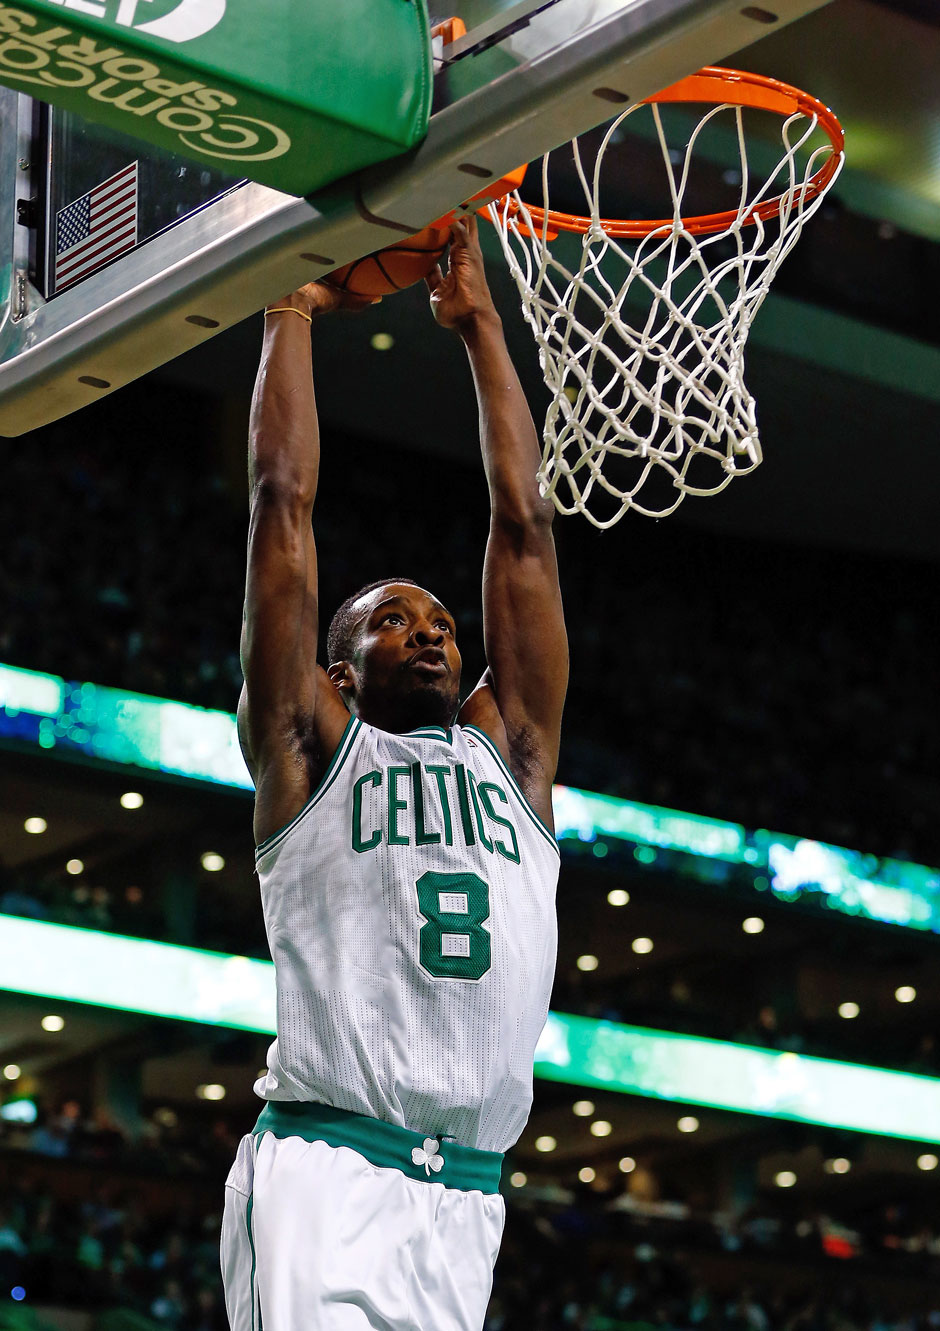 Forward: Jeff Green (16,0 Punkte, 76,8% FT)